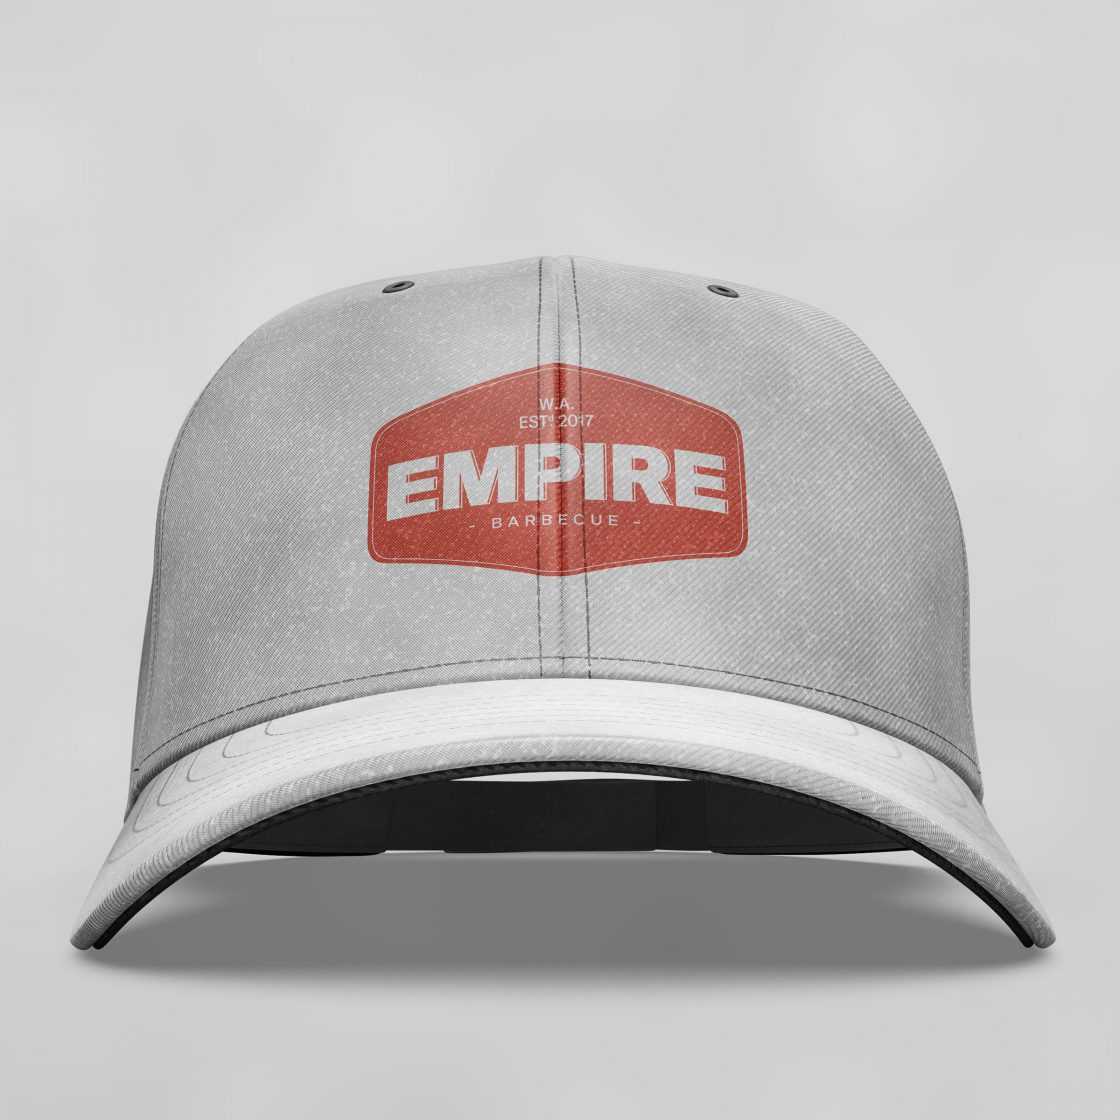 Empire BBQ brand logo on cap